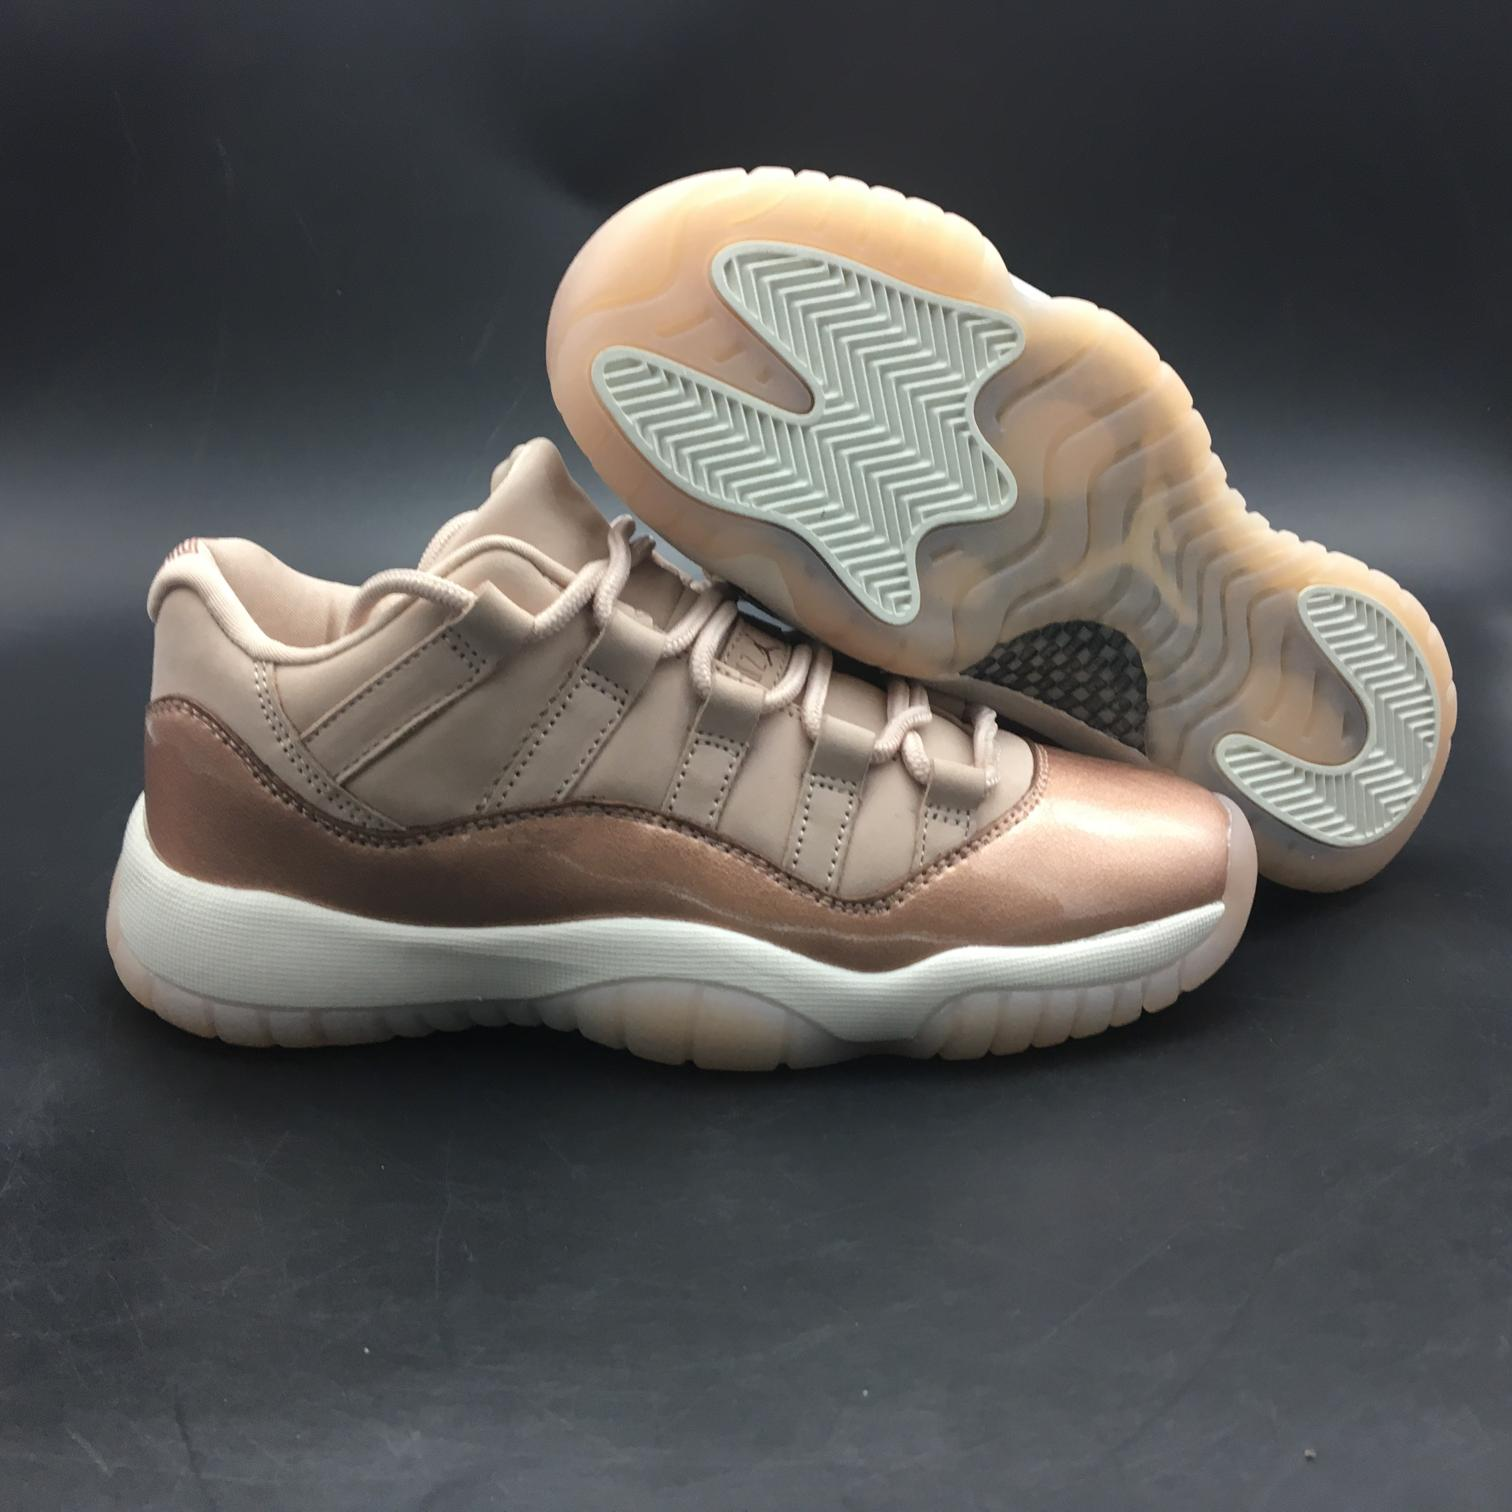 Wmns Jordan 11 Retro Low Rose Gold-6